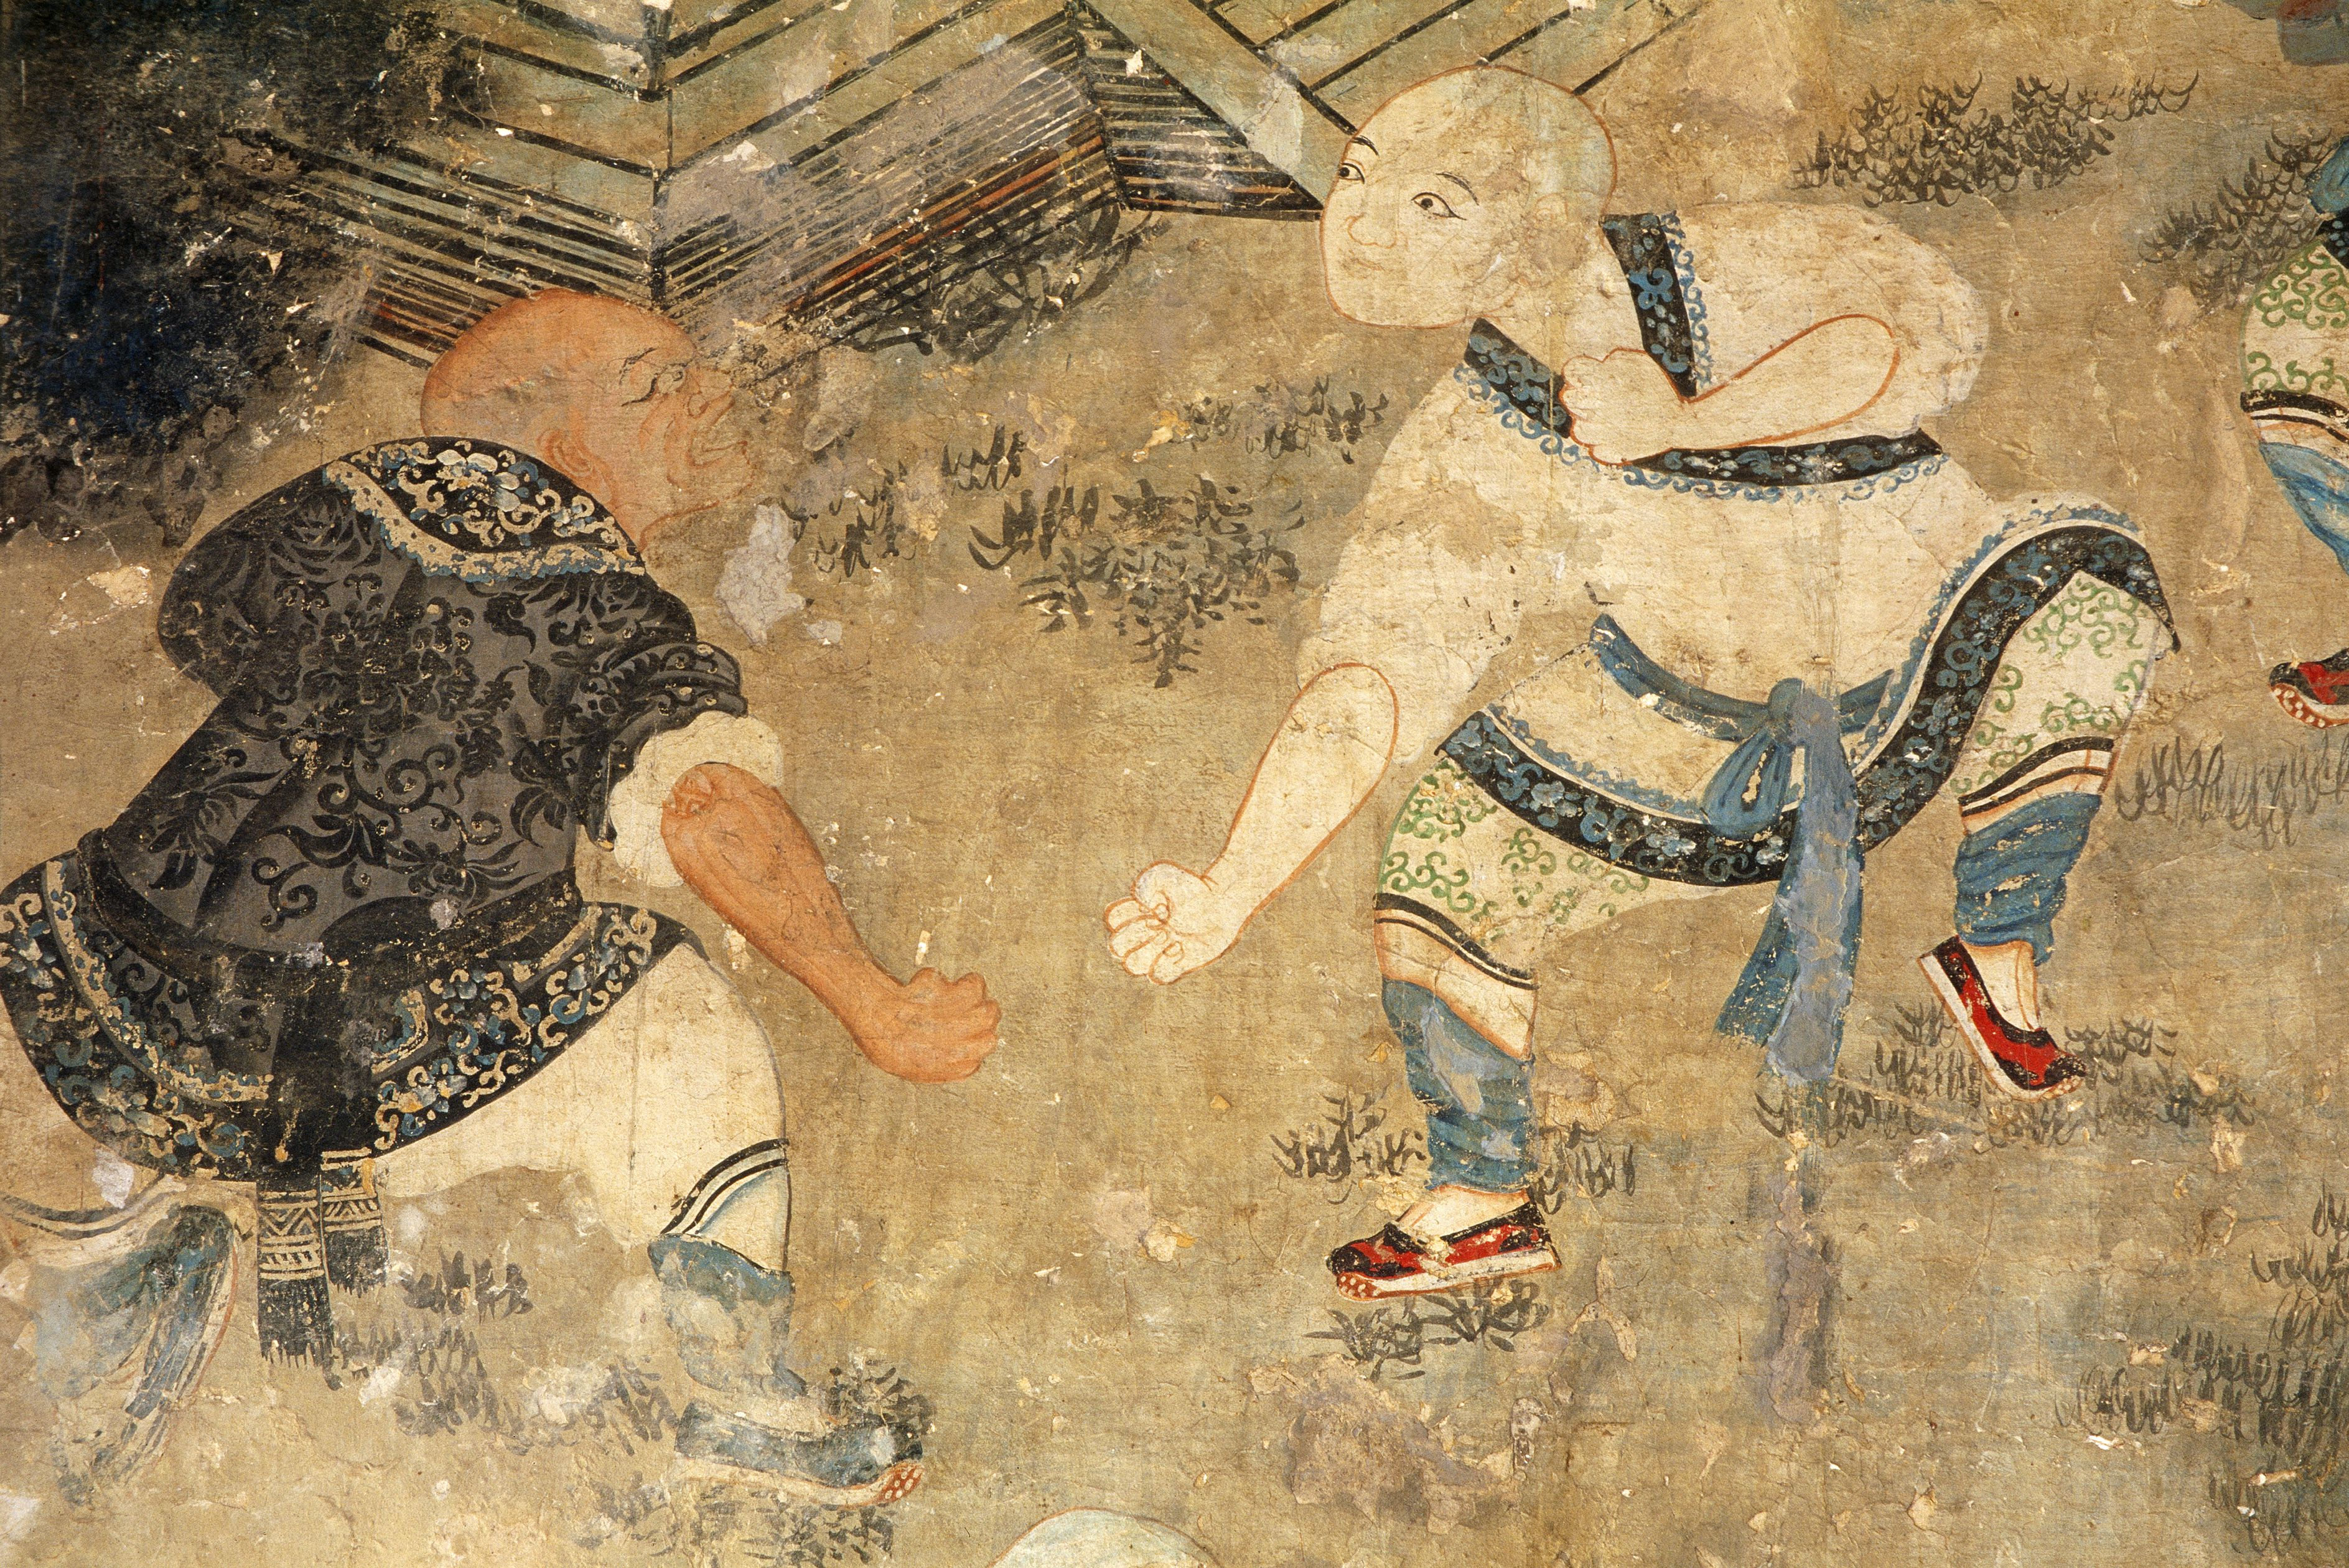 Qing Dynasty Painting Shaolin